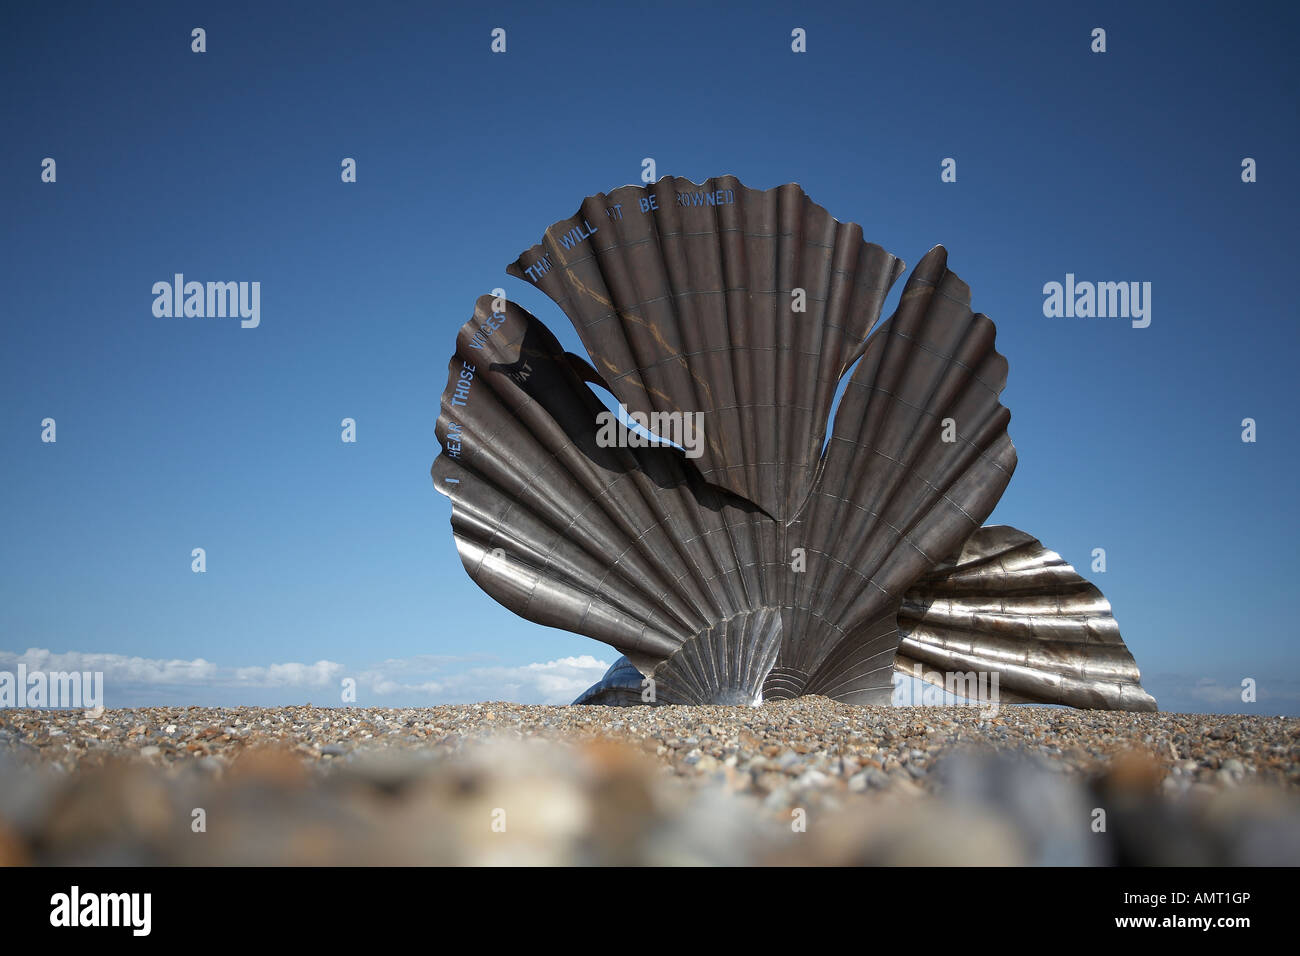 BENJAMIN BRITTEN MAGGI HAMBLING,MEMORIAL,SUFFOLK ALDEBURGH Photo Stock